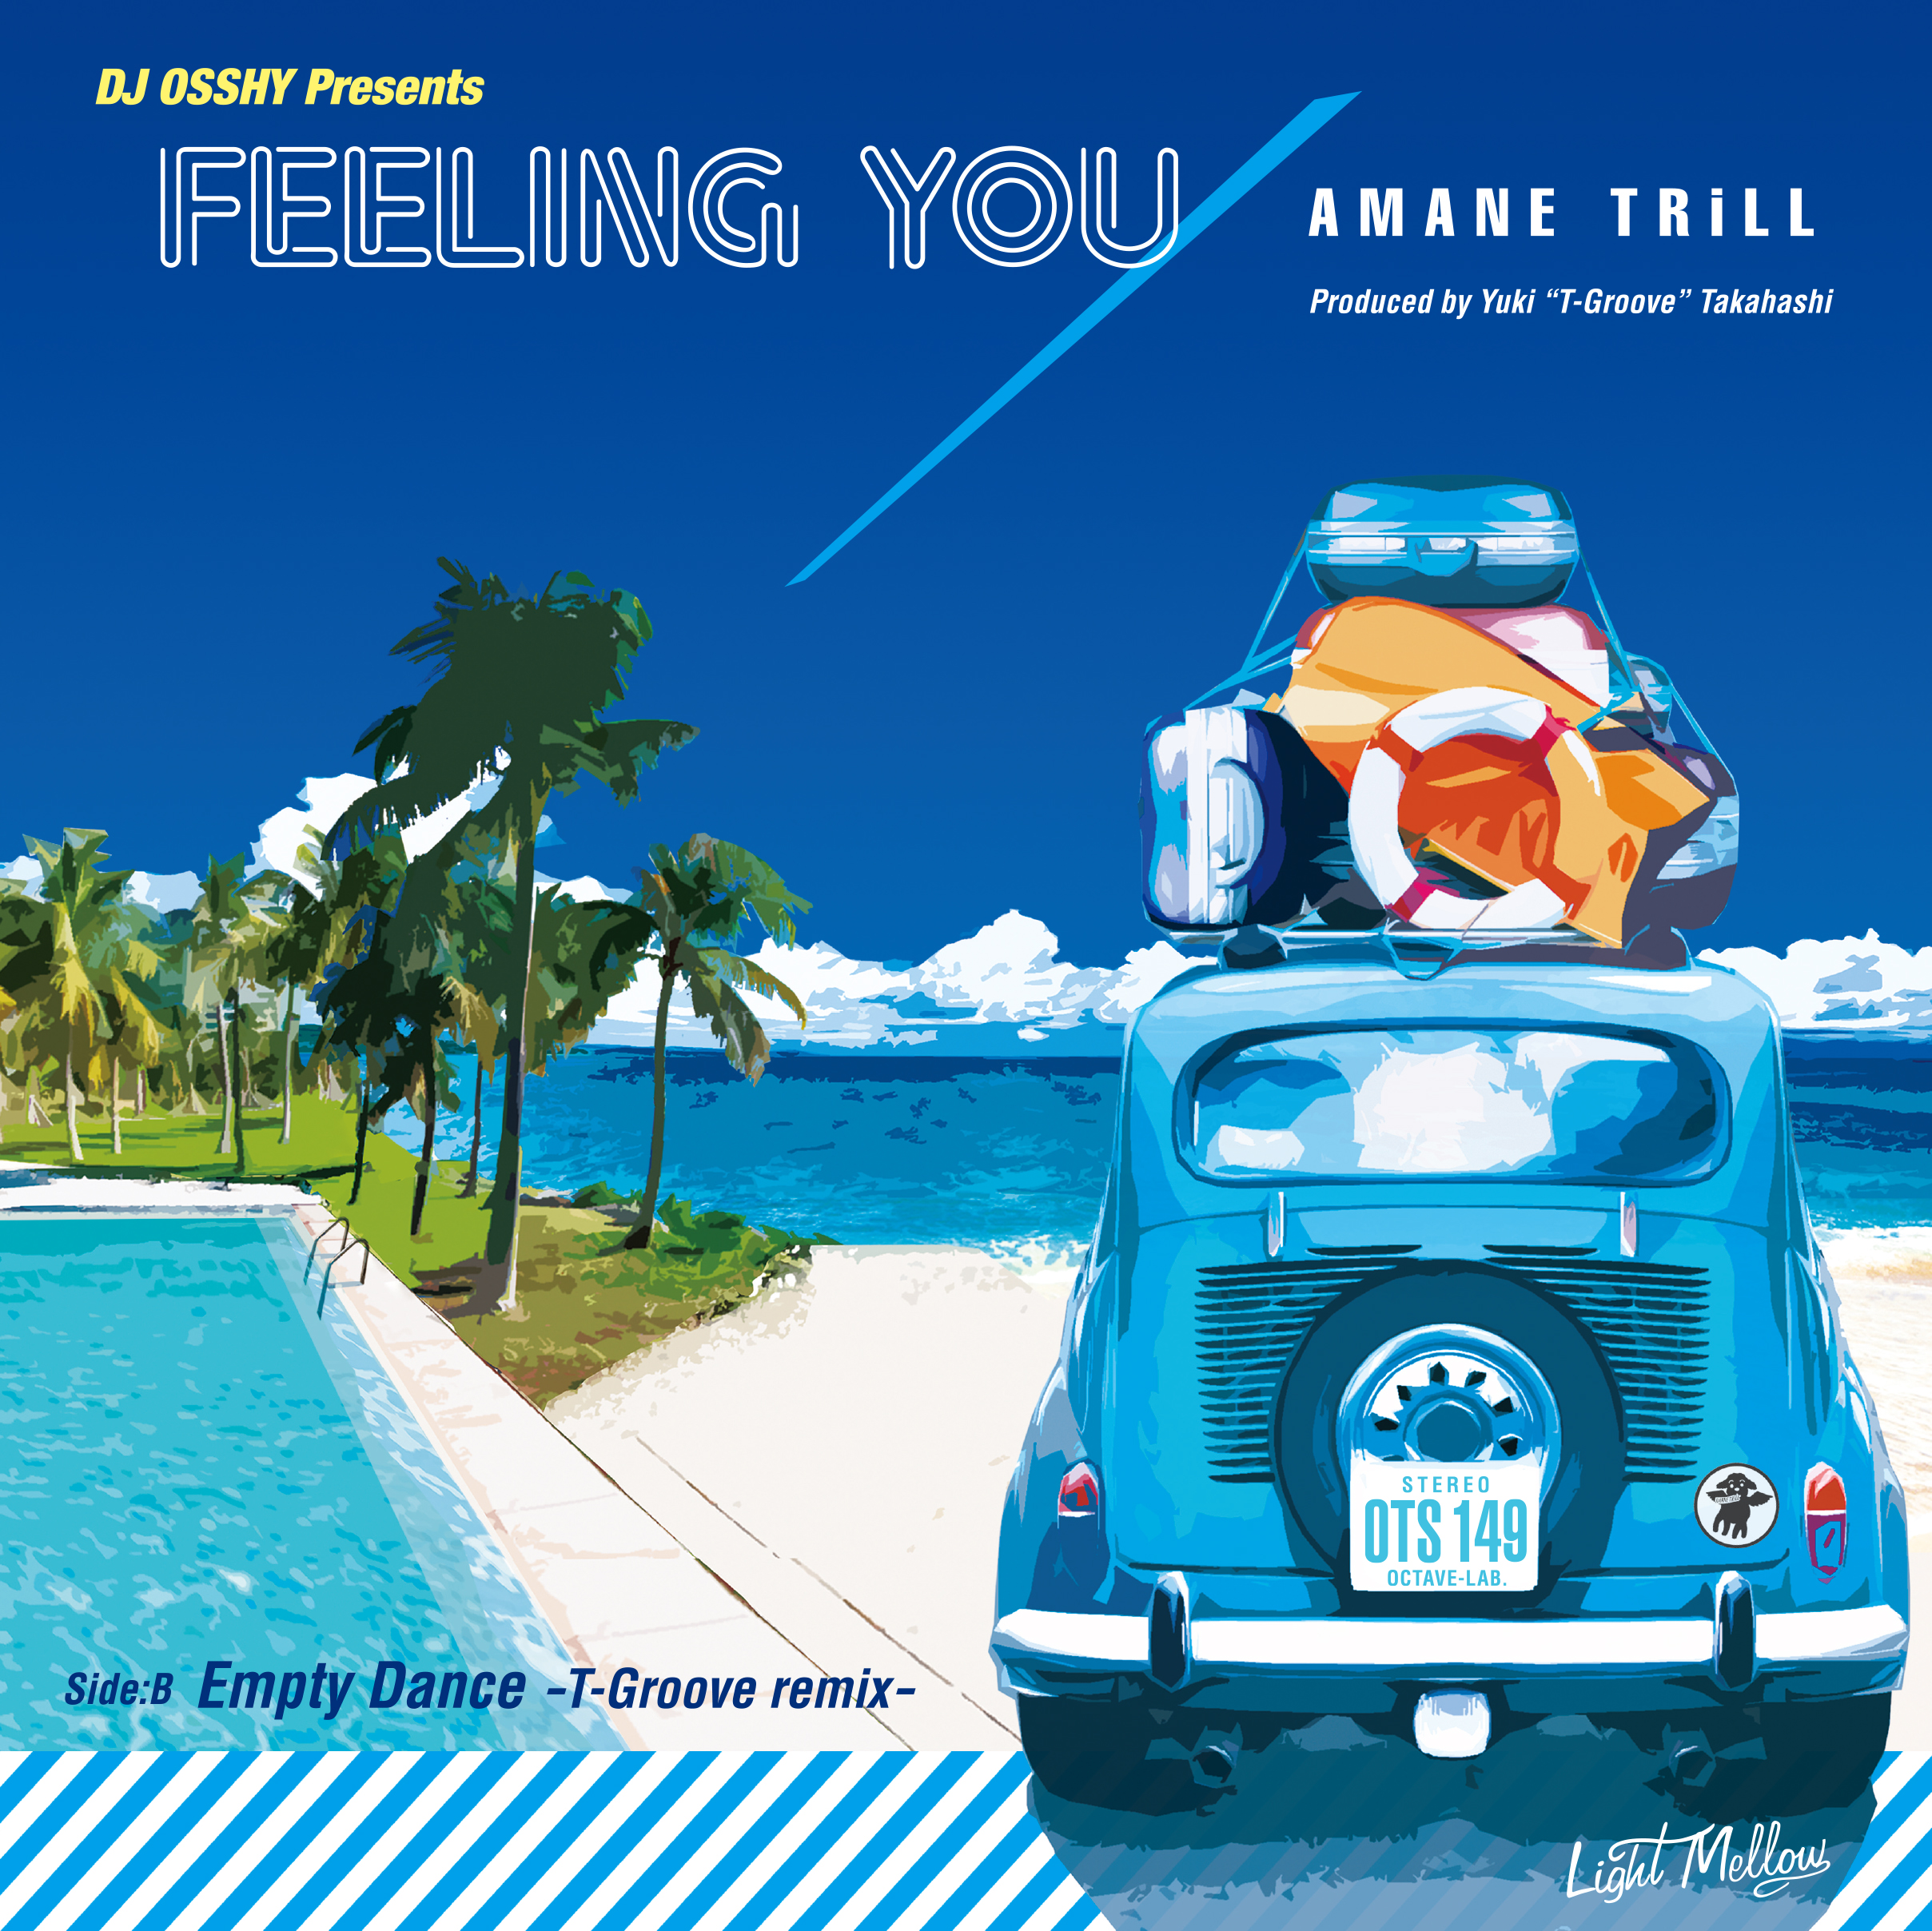 062_Feeling You / Empty Dance -T-Groove remix-